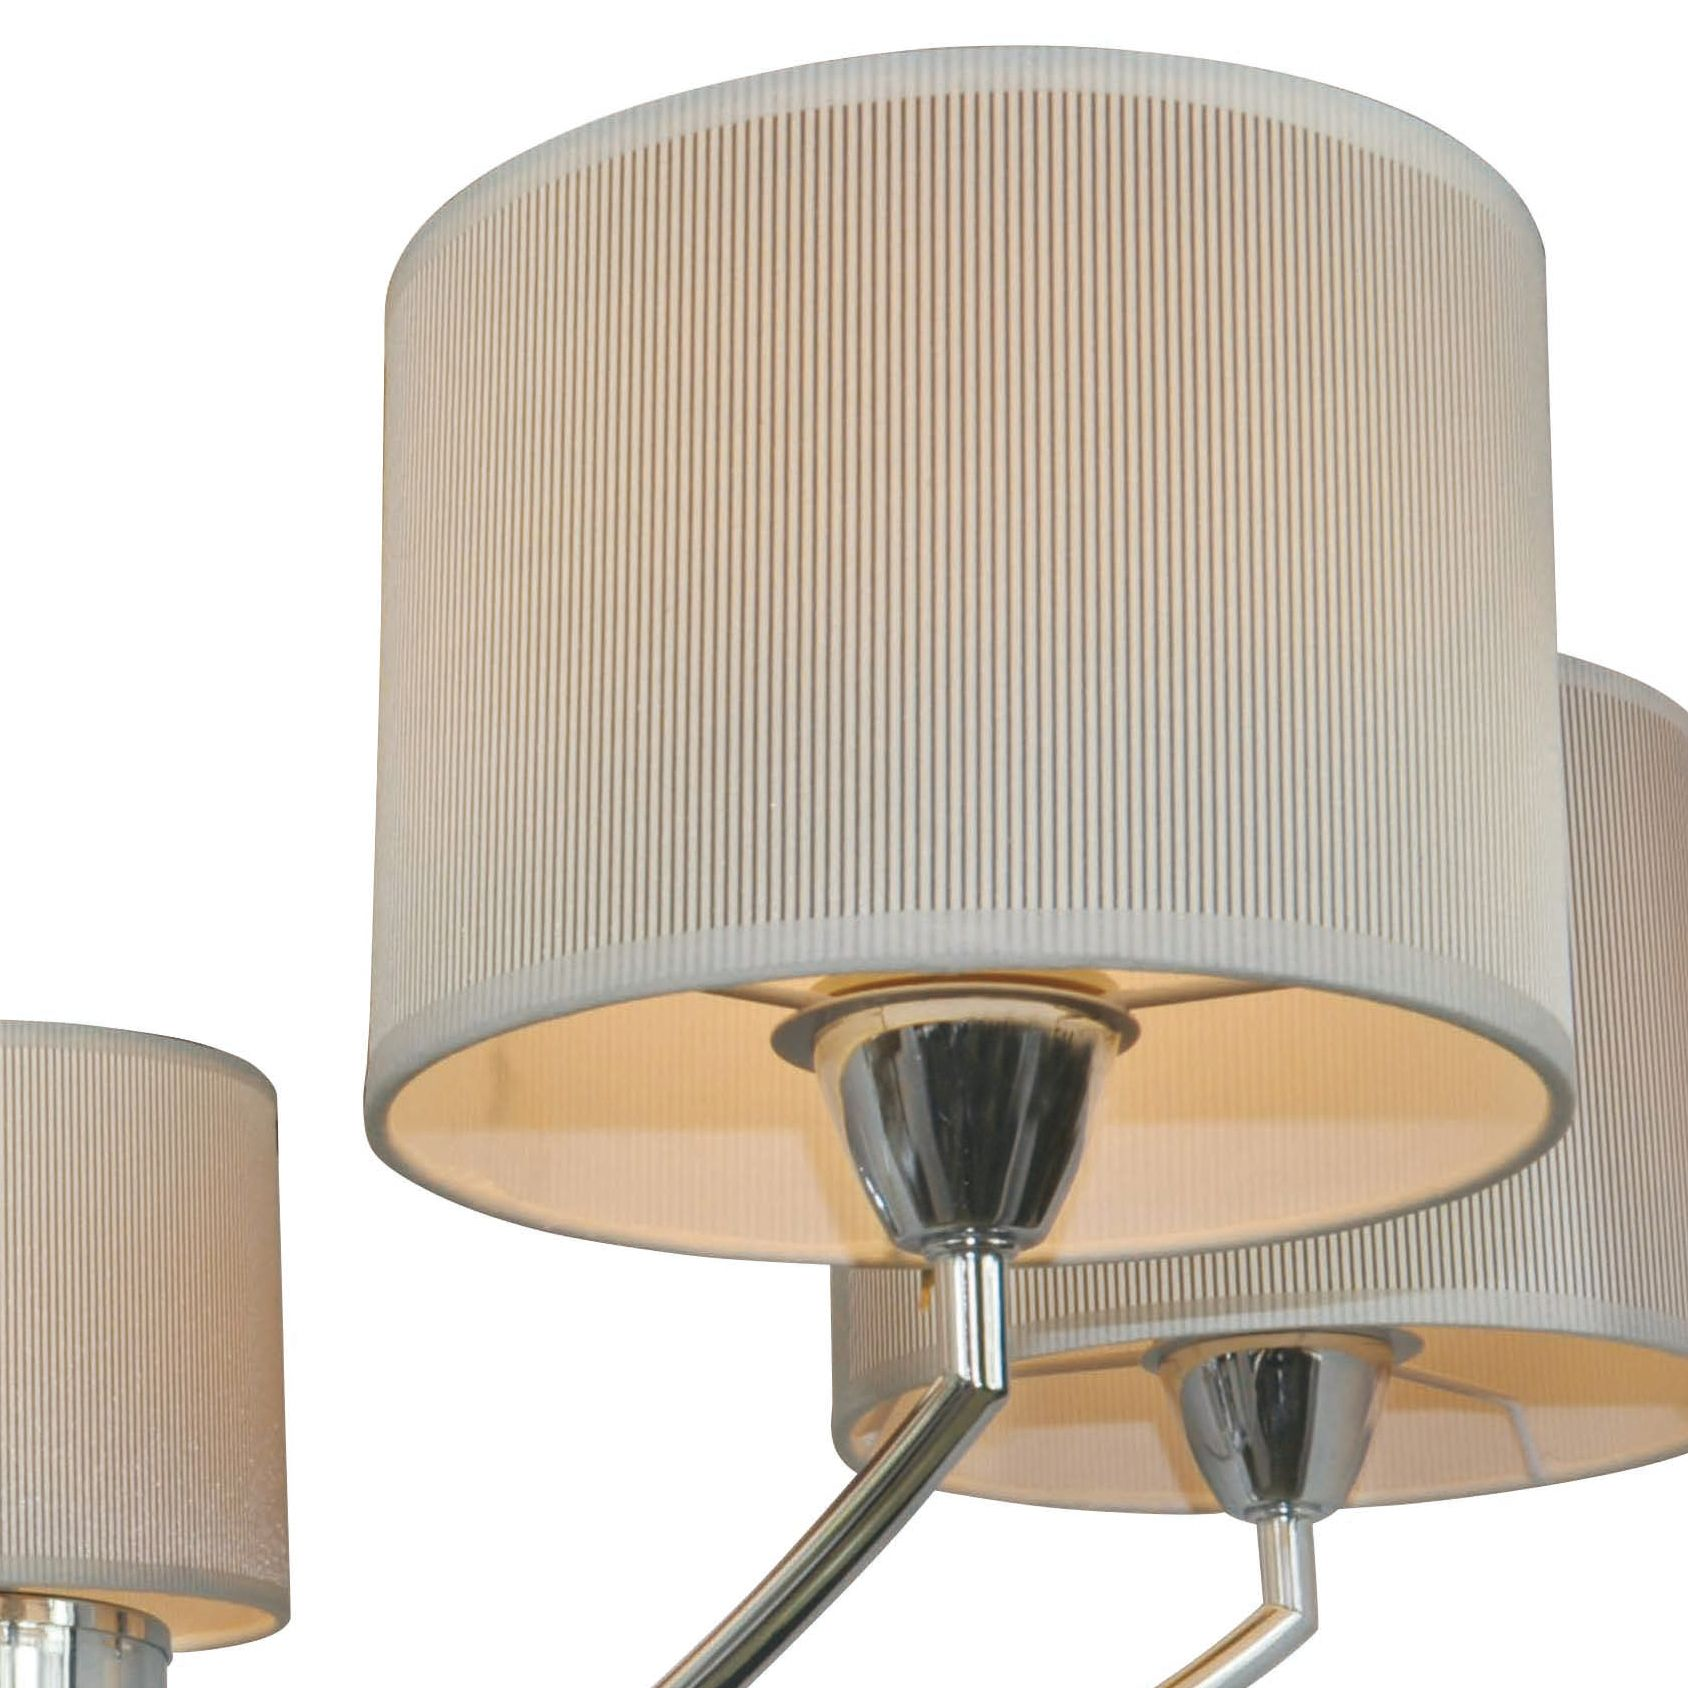 Fides shaded grey chrome effect 5 lamp pendant ceiling light aloadofball Image collections